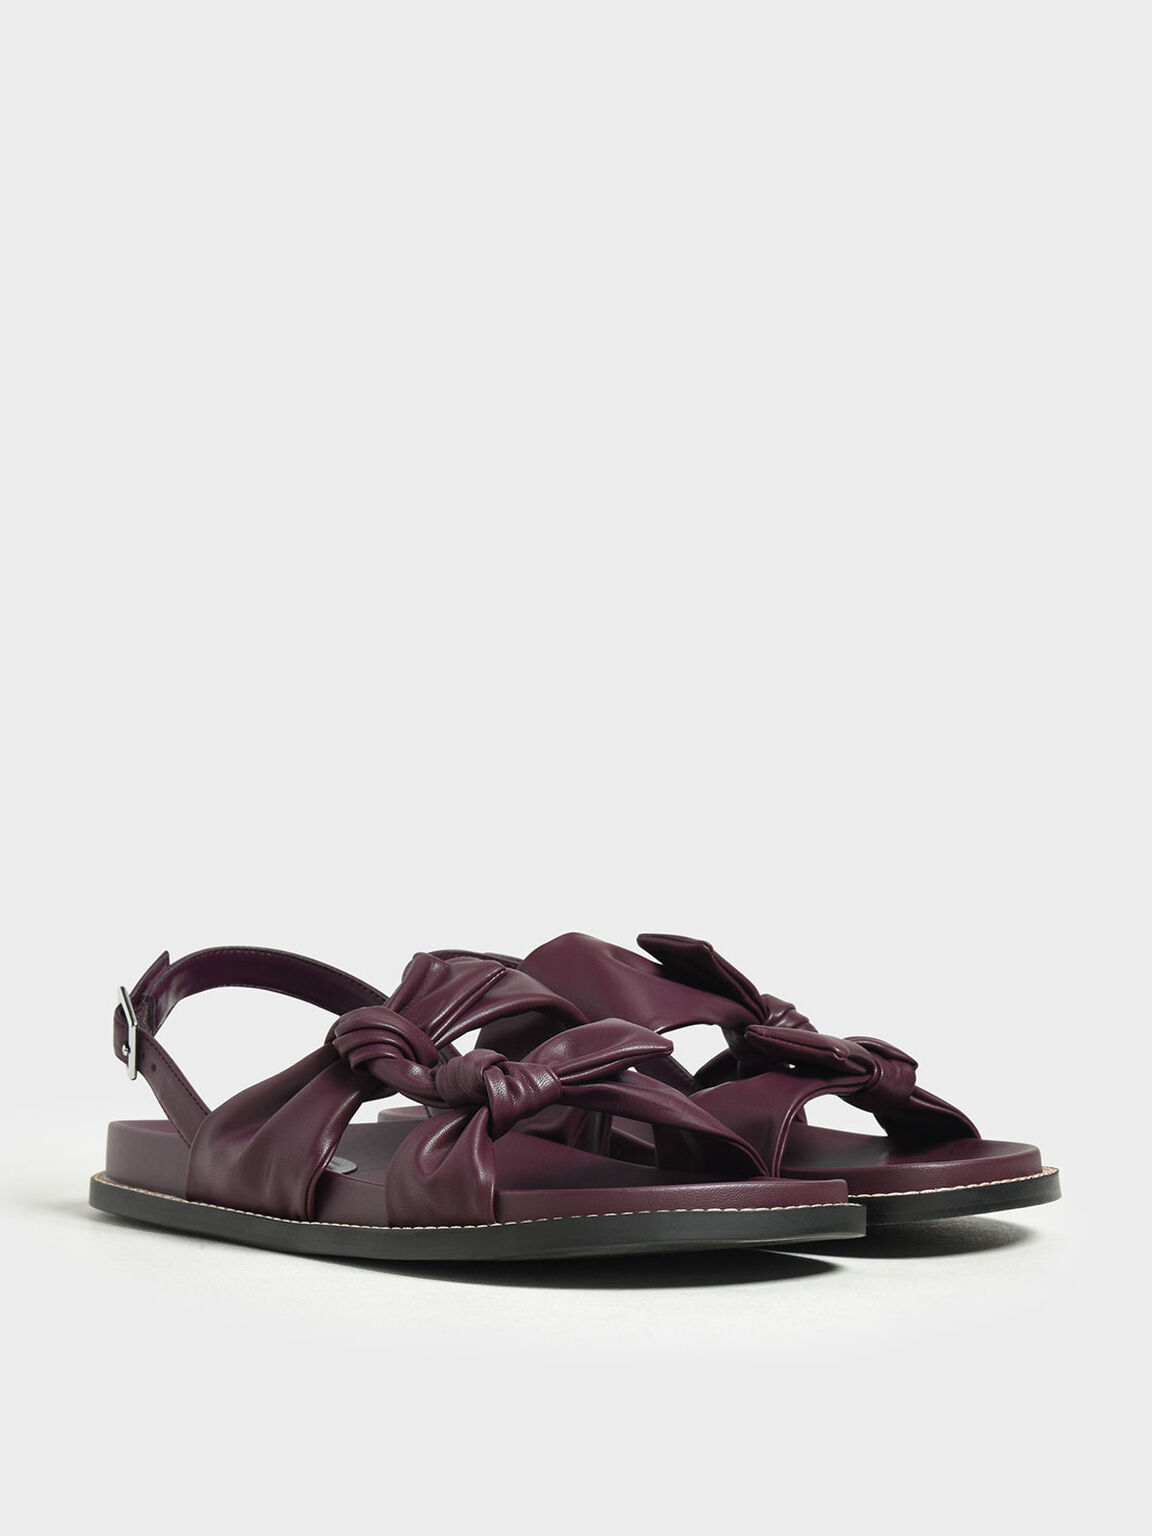 Double Knotted Slingback Sandals, Prune, hi-res